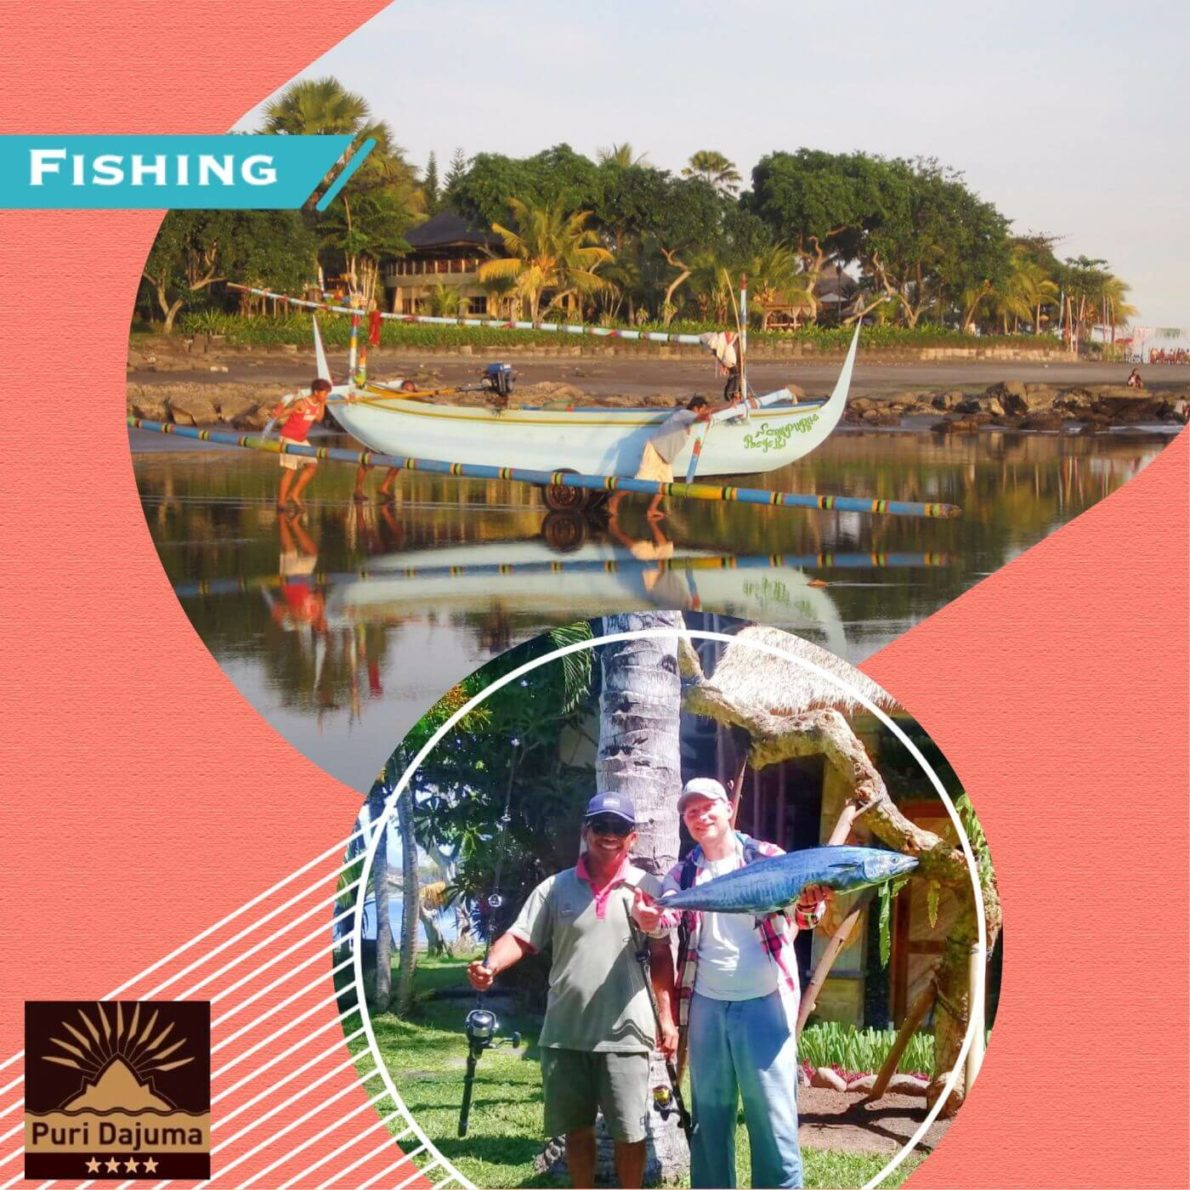 DAJUMA EXPERIENCE: FISHING OFFSHORE Puri Dajuma, Beach Eco-Resort & Spa, West Bali Beach